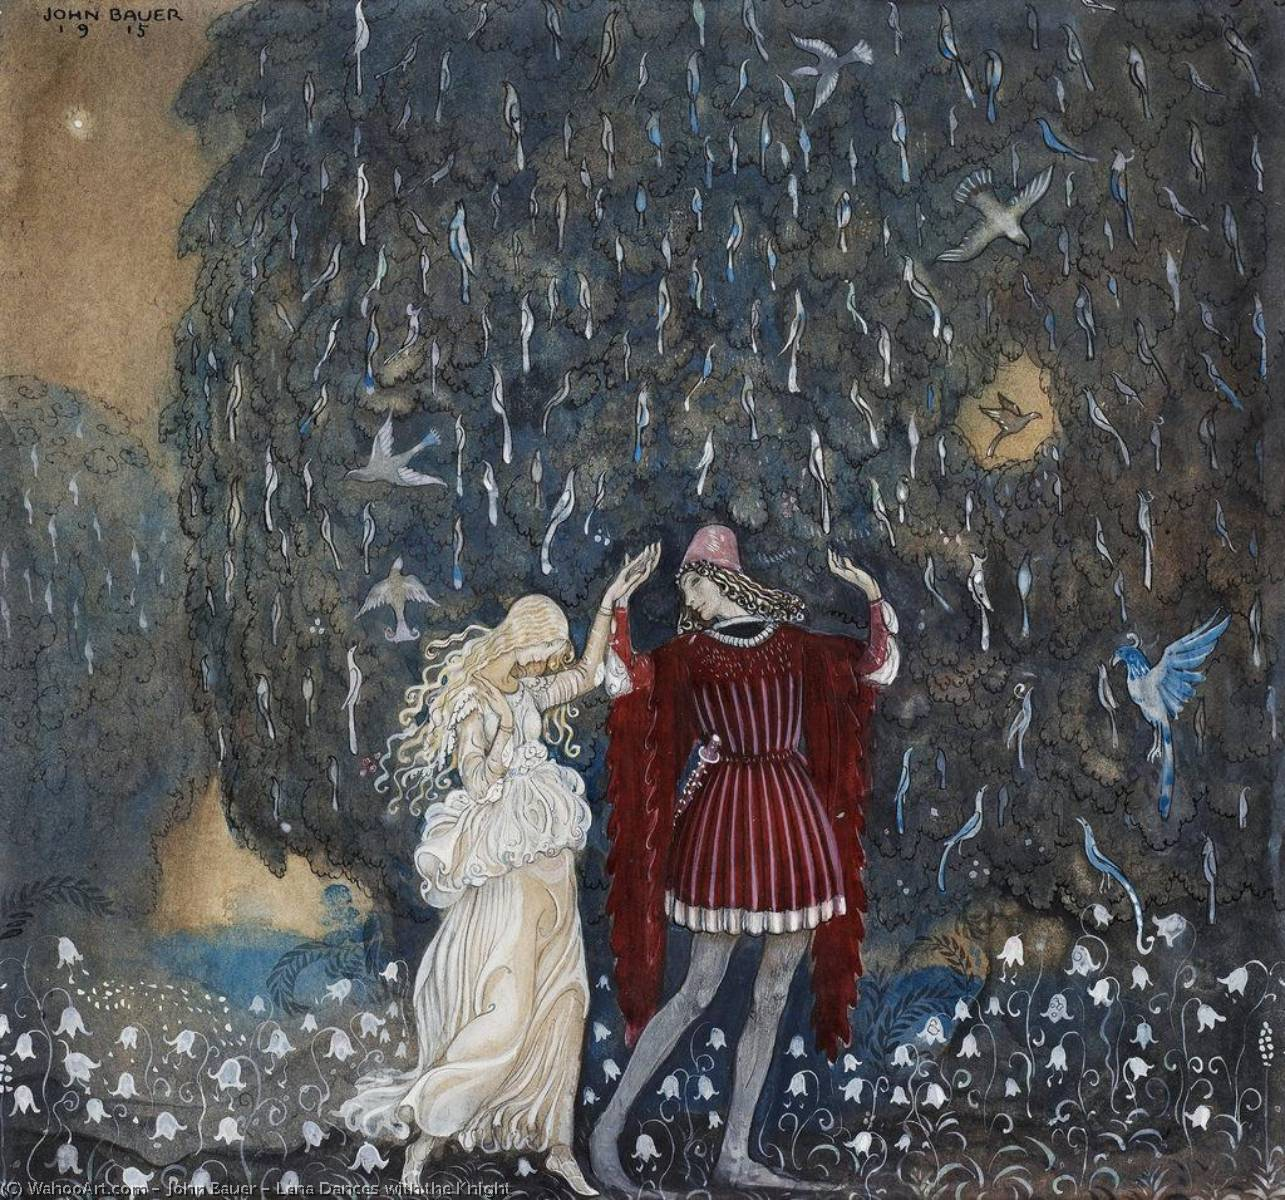 Lena Dances with the Knight, 1915 by John Bauer (1882-1918, Sweden) | Art Reproduction | WahooArt.com